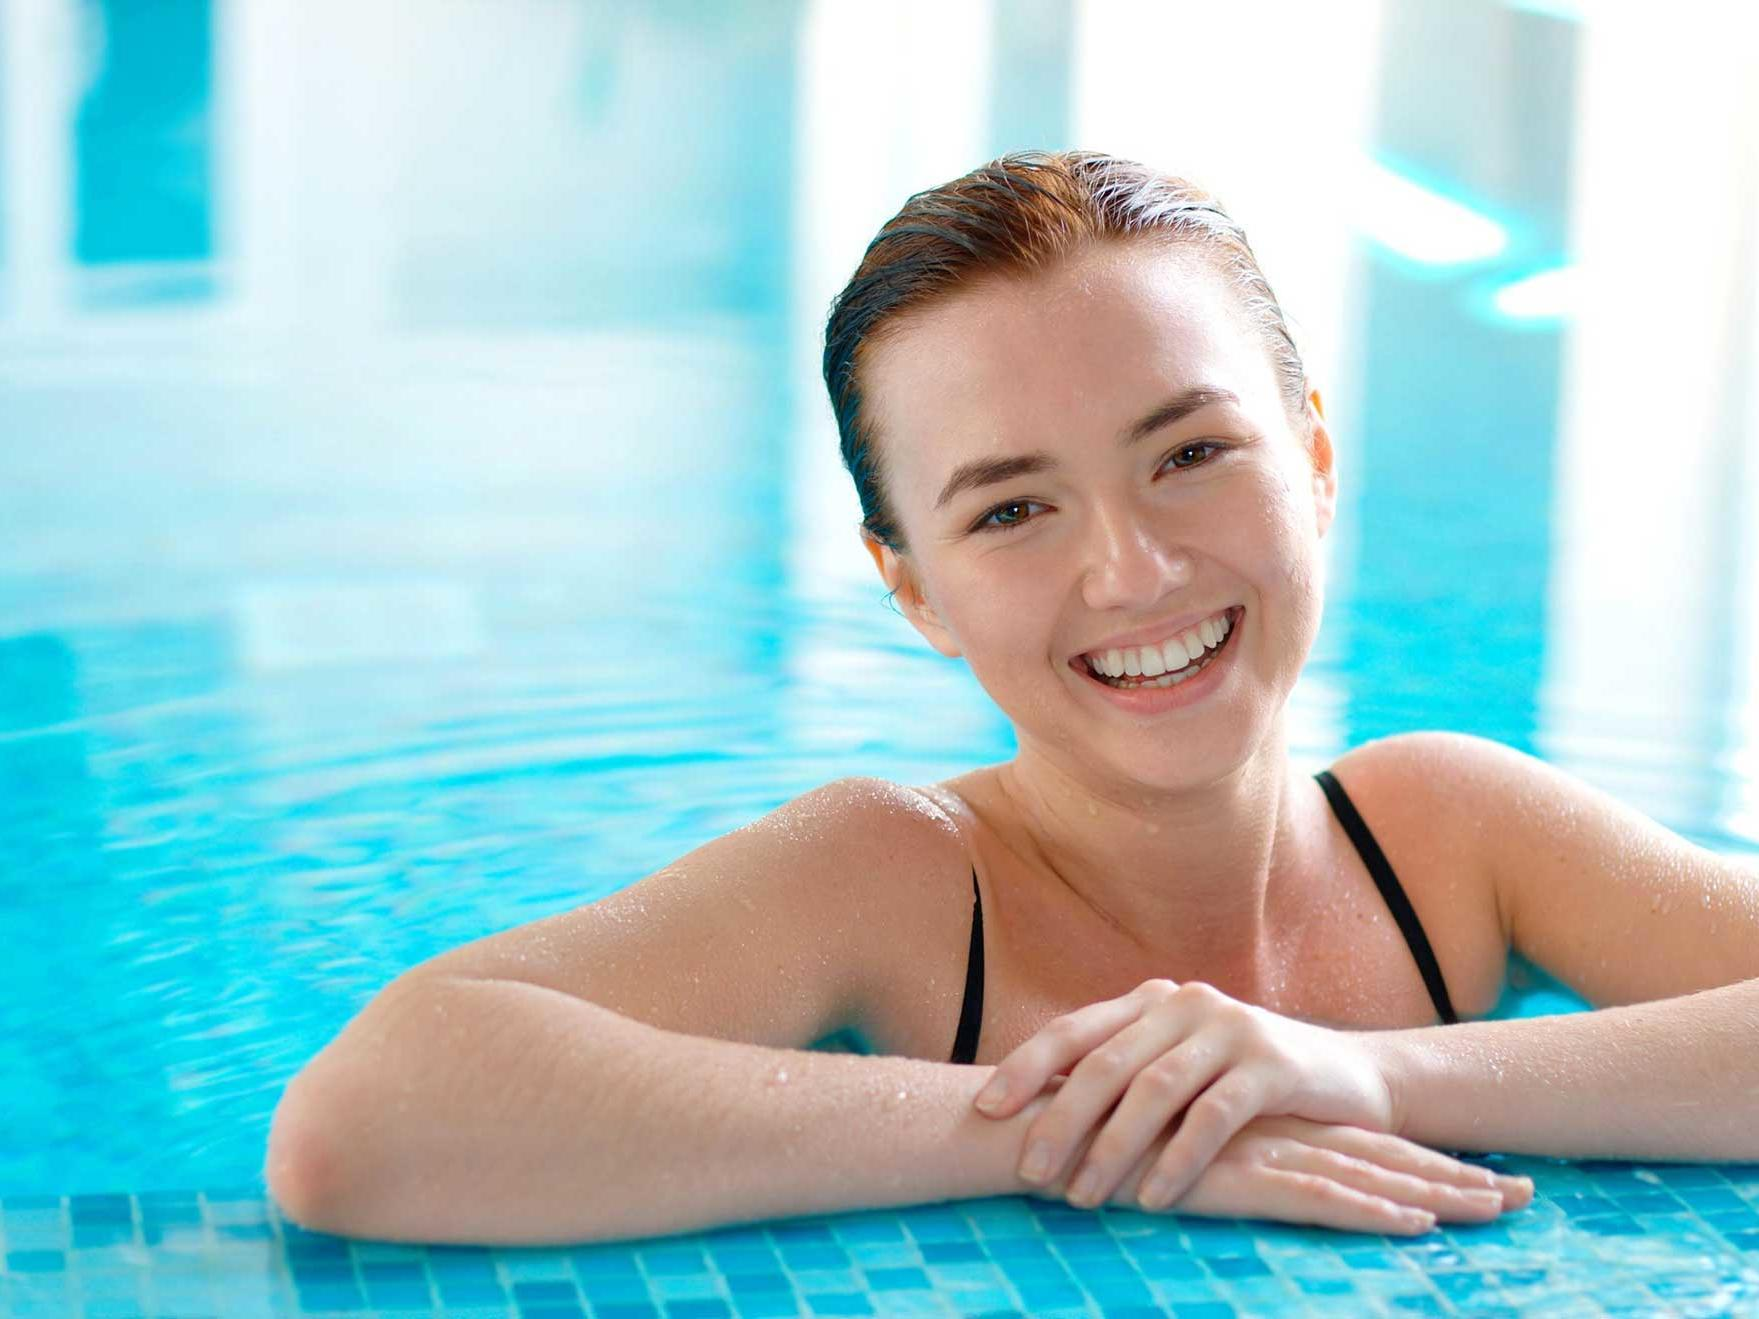 Lady smilling in swimming pool at Artyzen Grand Lapa Hotel Macau